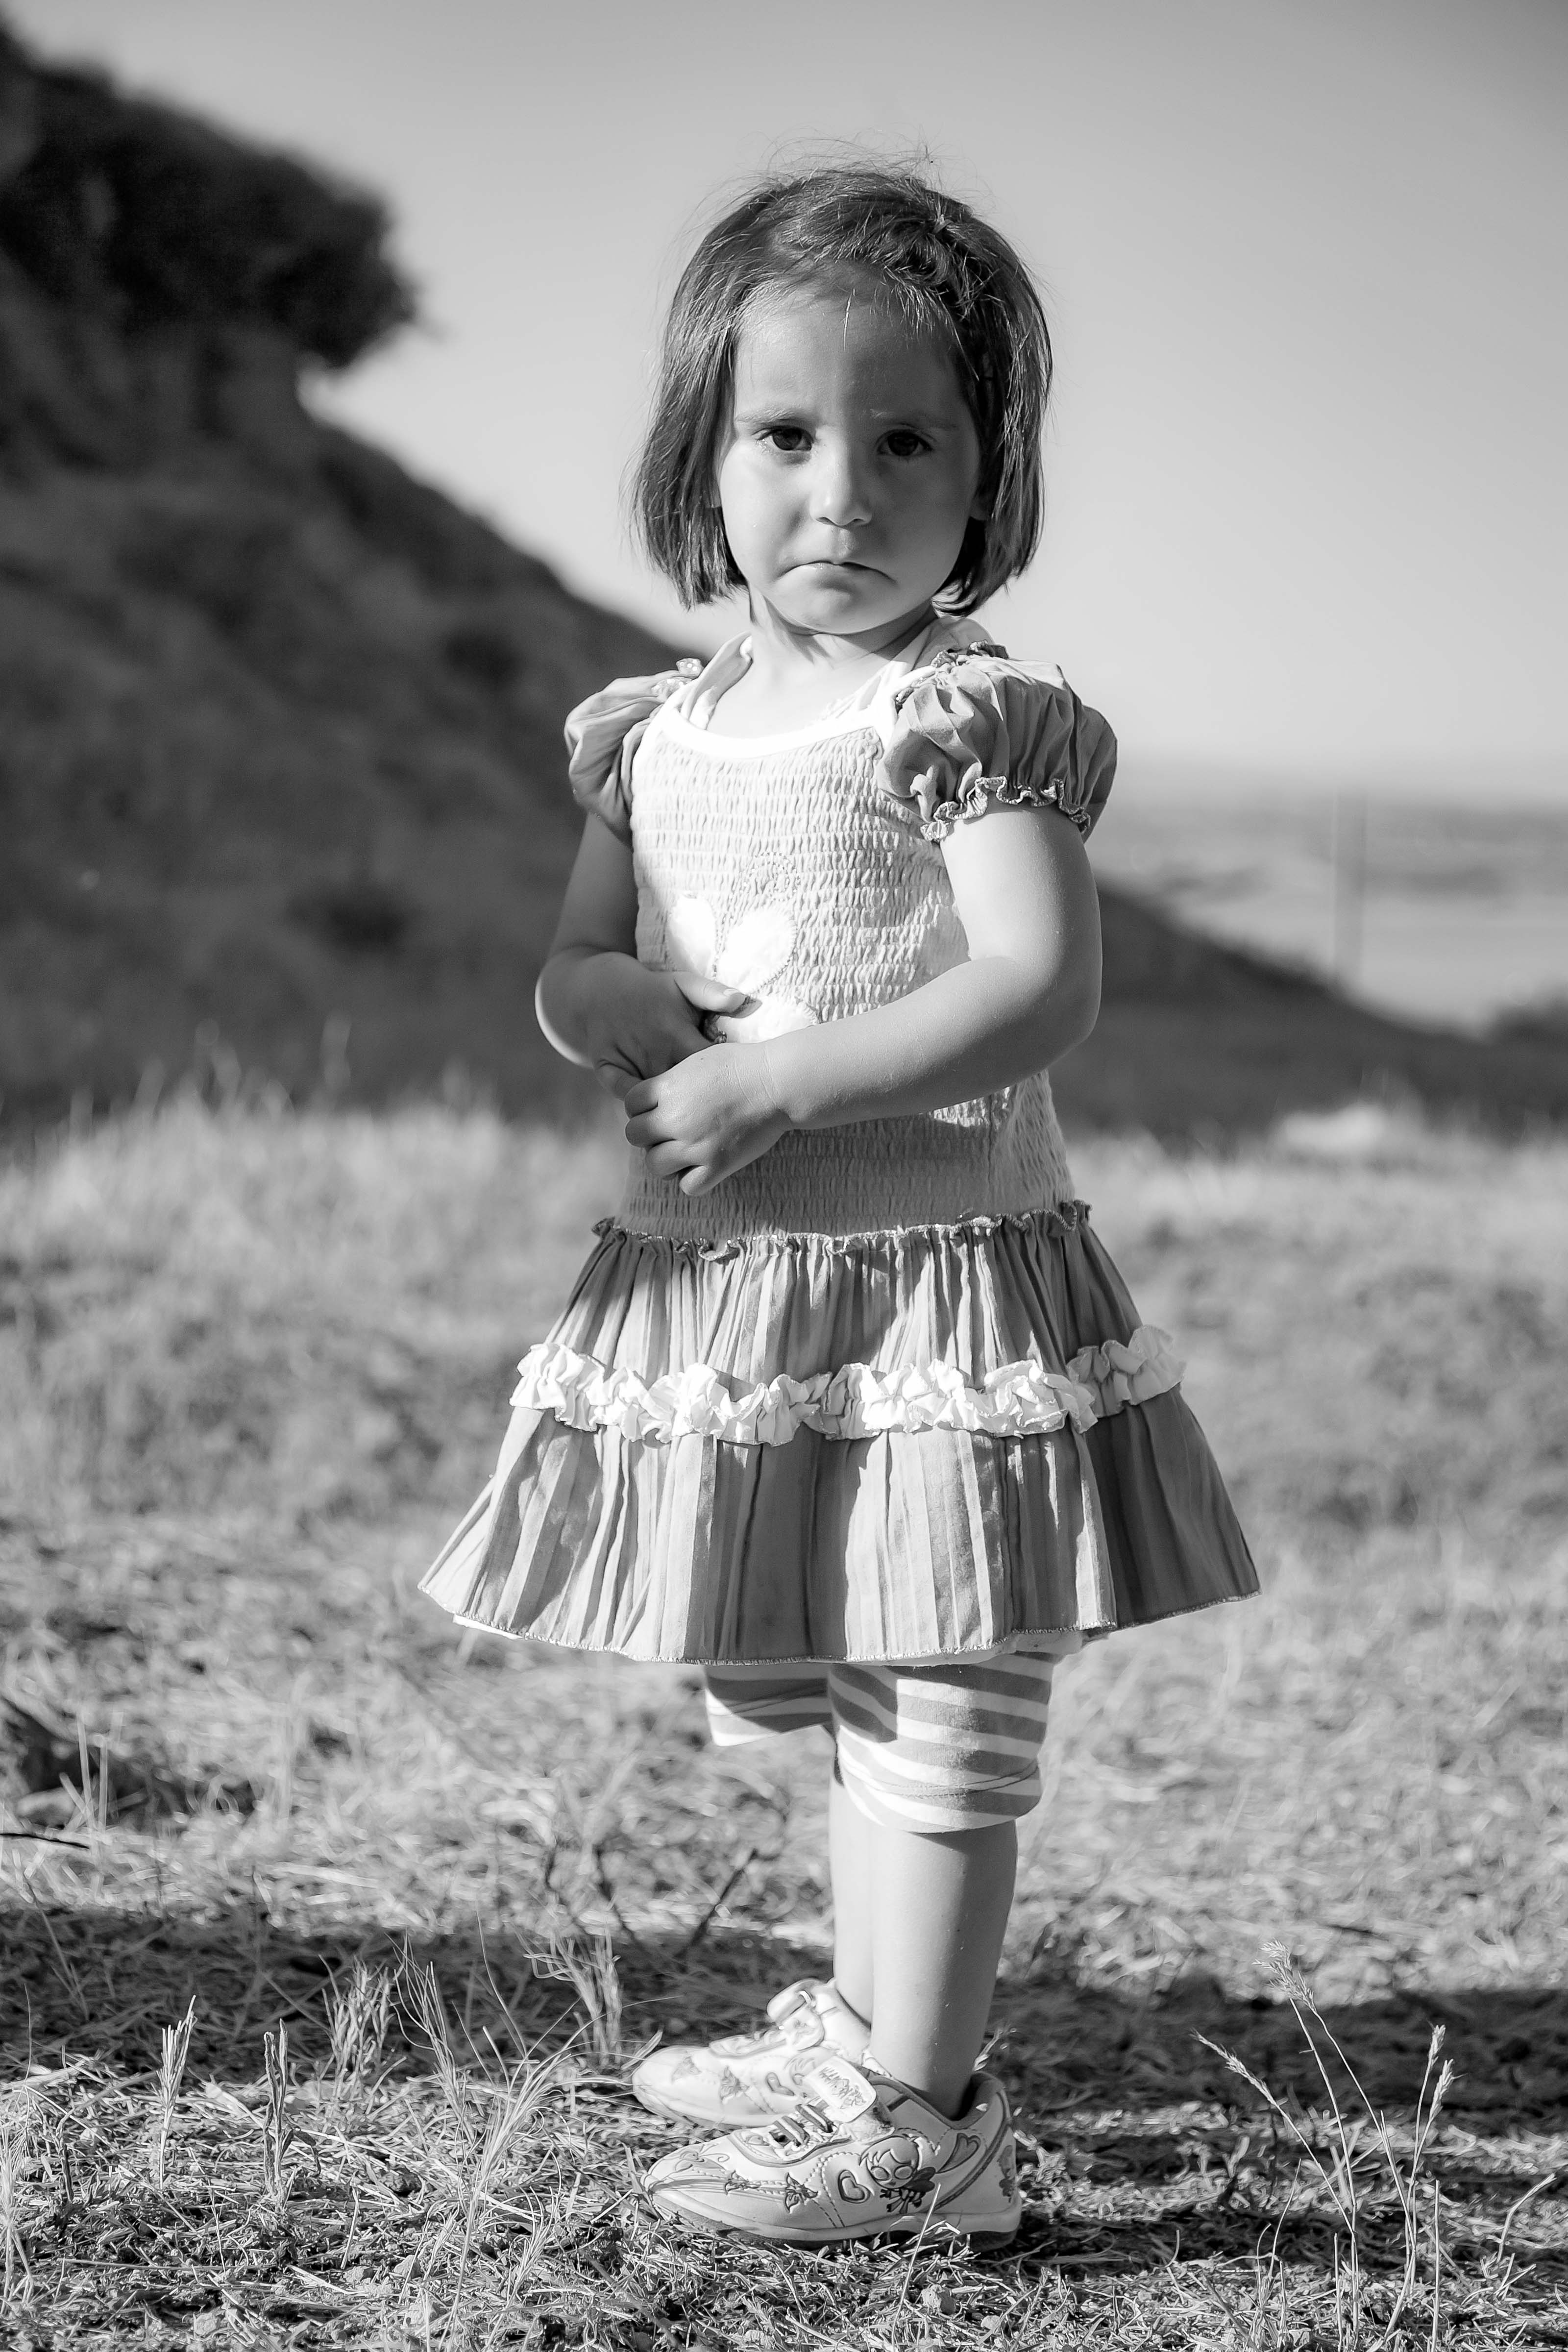 Turkey, Bitlis Prov, Sheep Camp Girl, 2010, IMG 8651